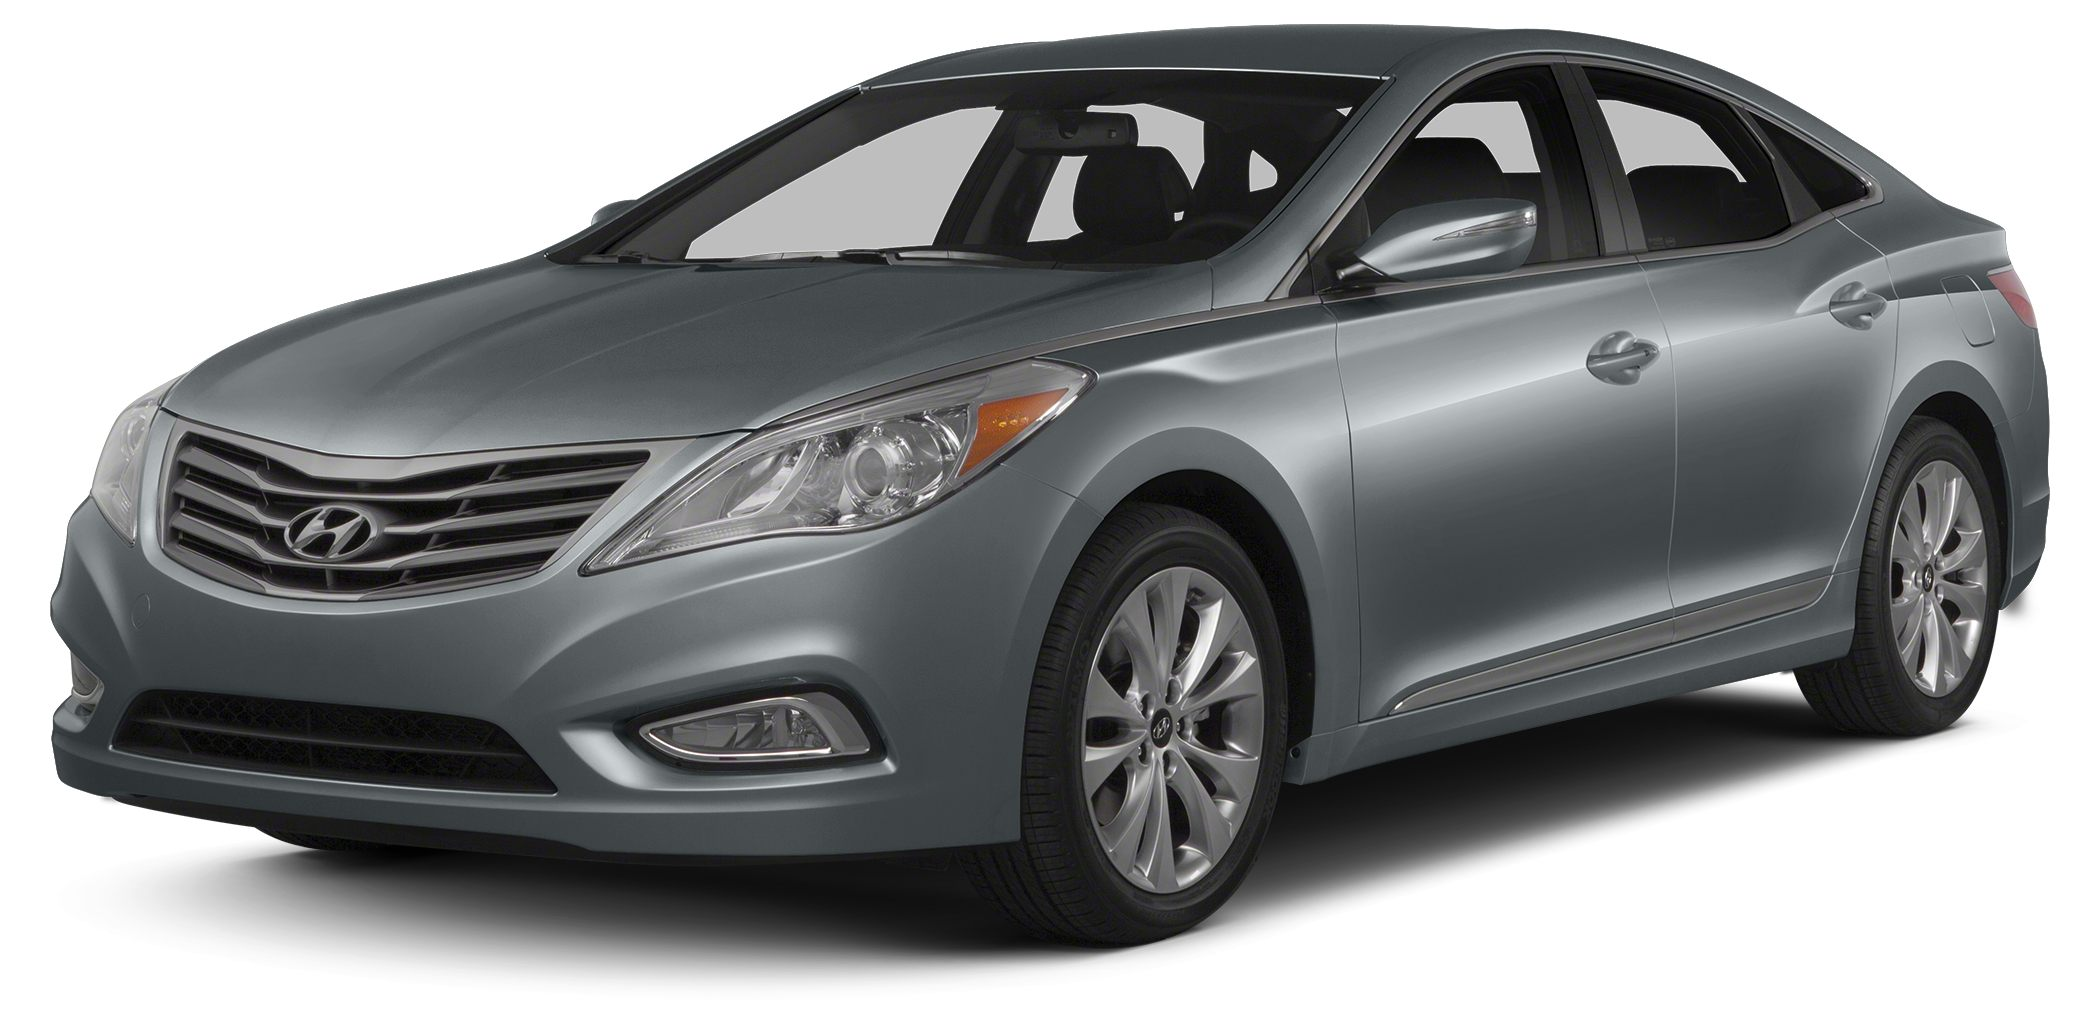 2013 Hyundai Azera Base Lifetime Engine Warranty at NO CHARGE on all pre-owned vehicles Courtesy A